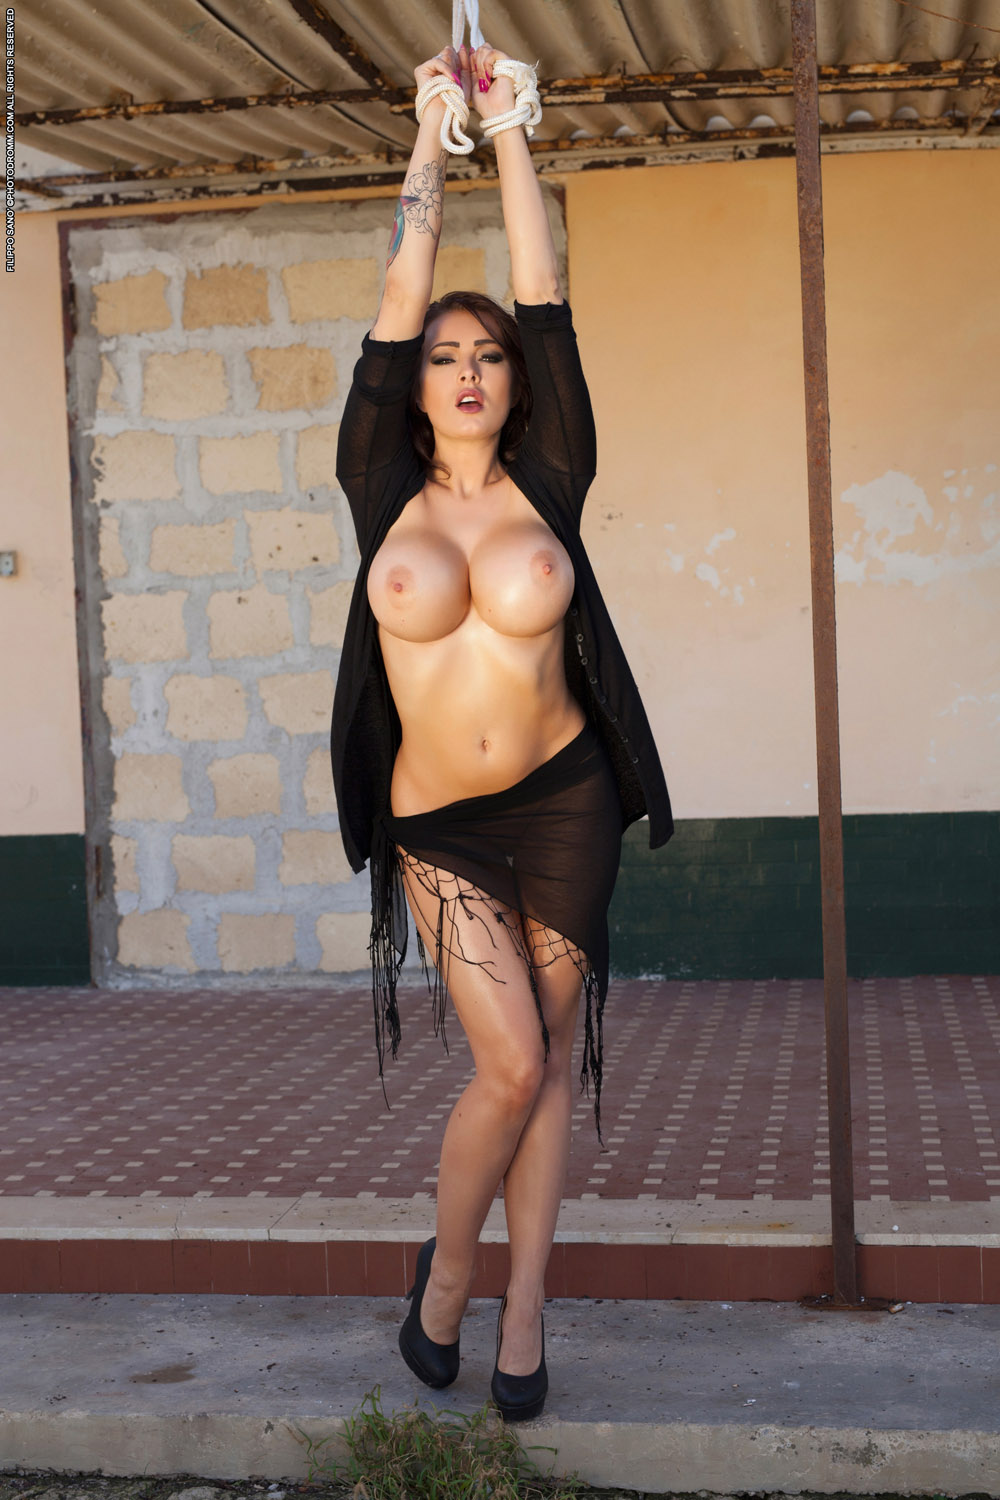 Properties Girla with big boobs and naked and tied up